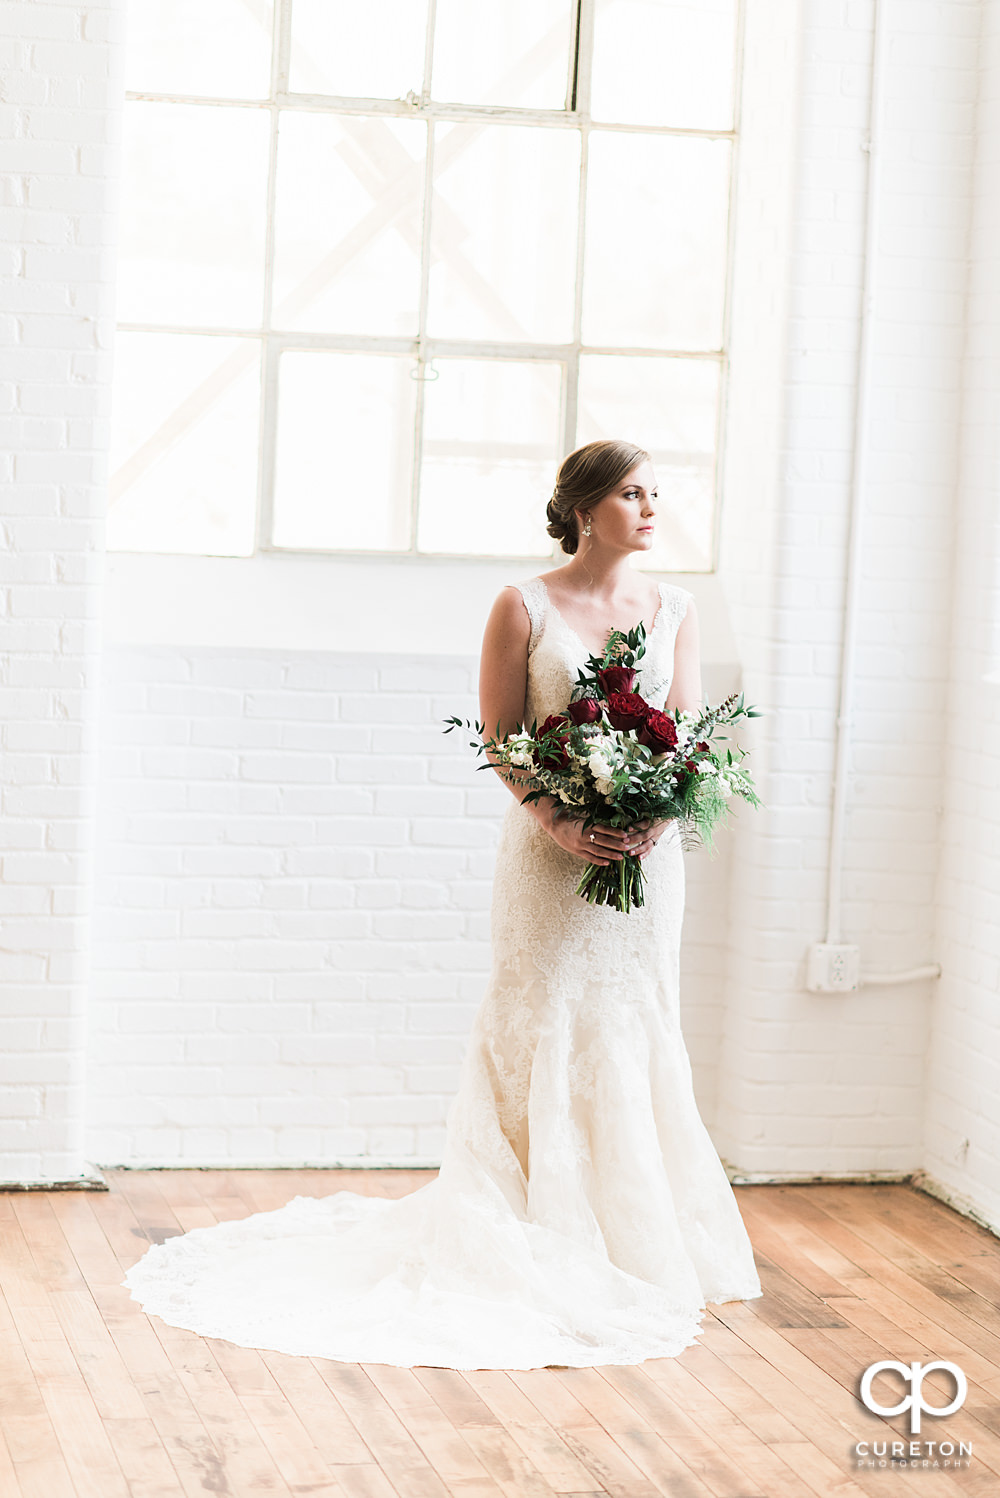 Bride holding her flowers bridal session at The Southern Bleachery wedding venue at the Taylor Mill.